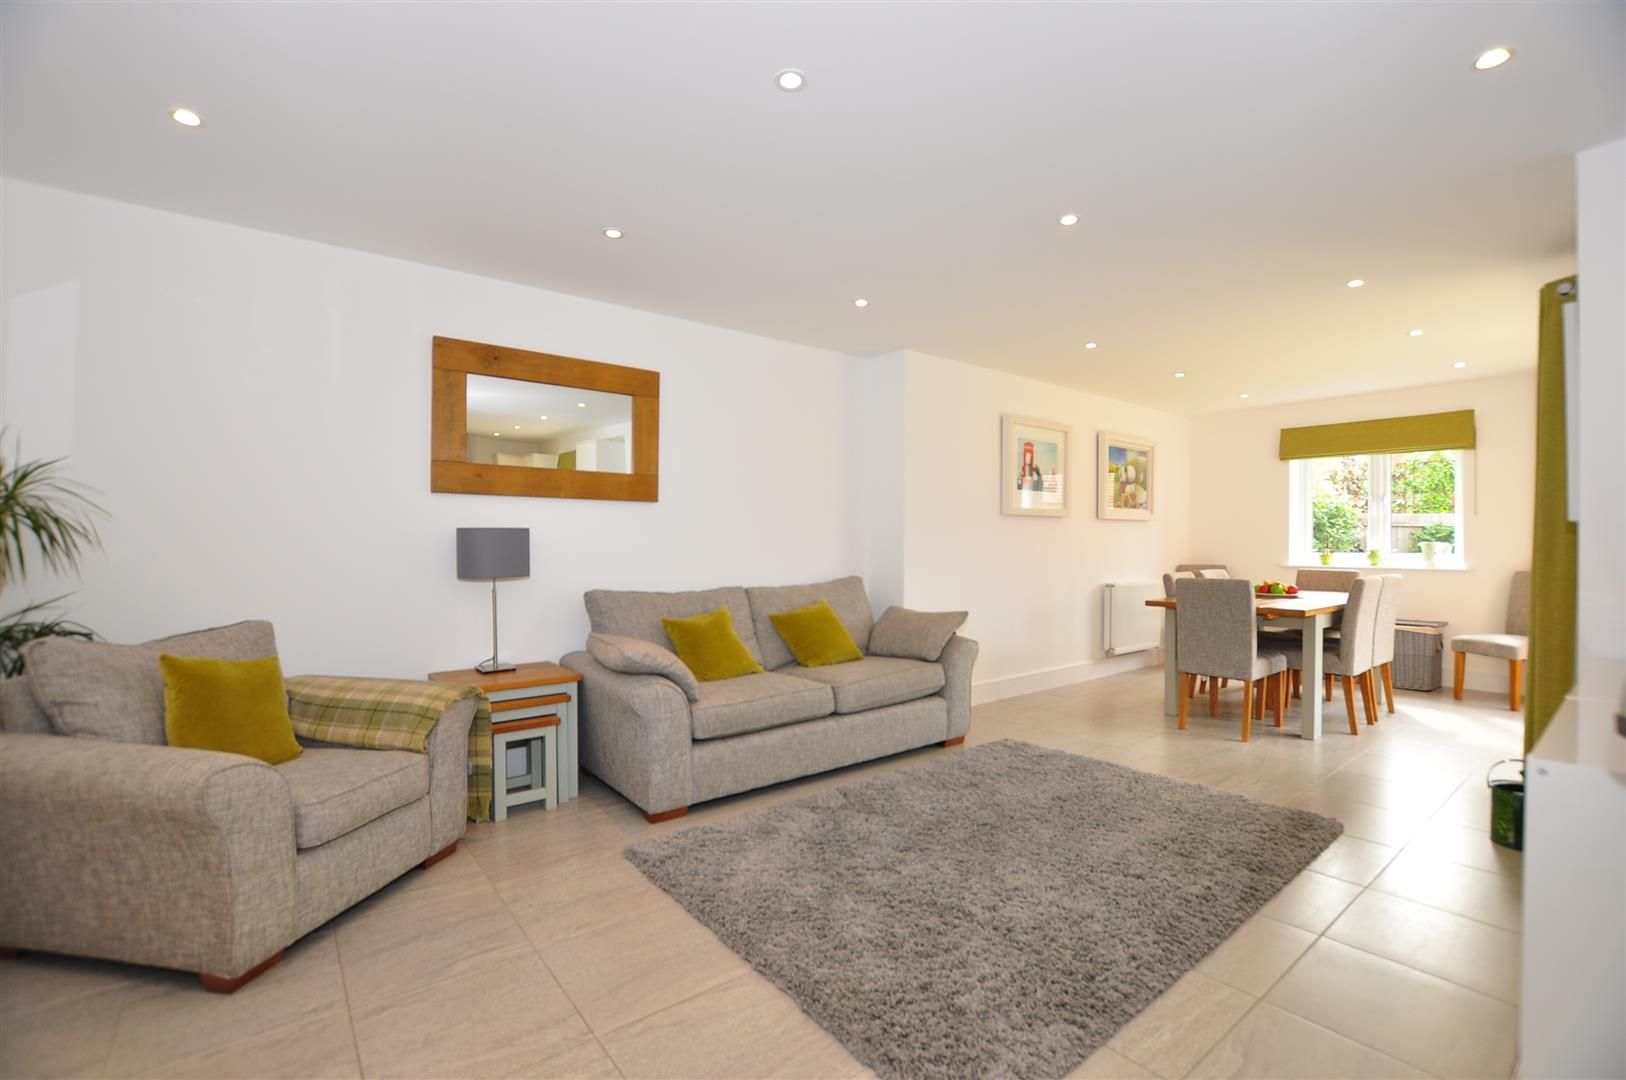 4 bed detached for sale in Hagley 3